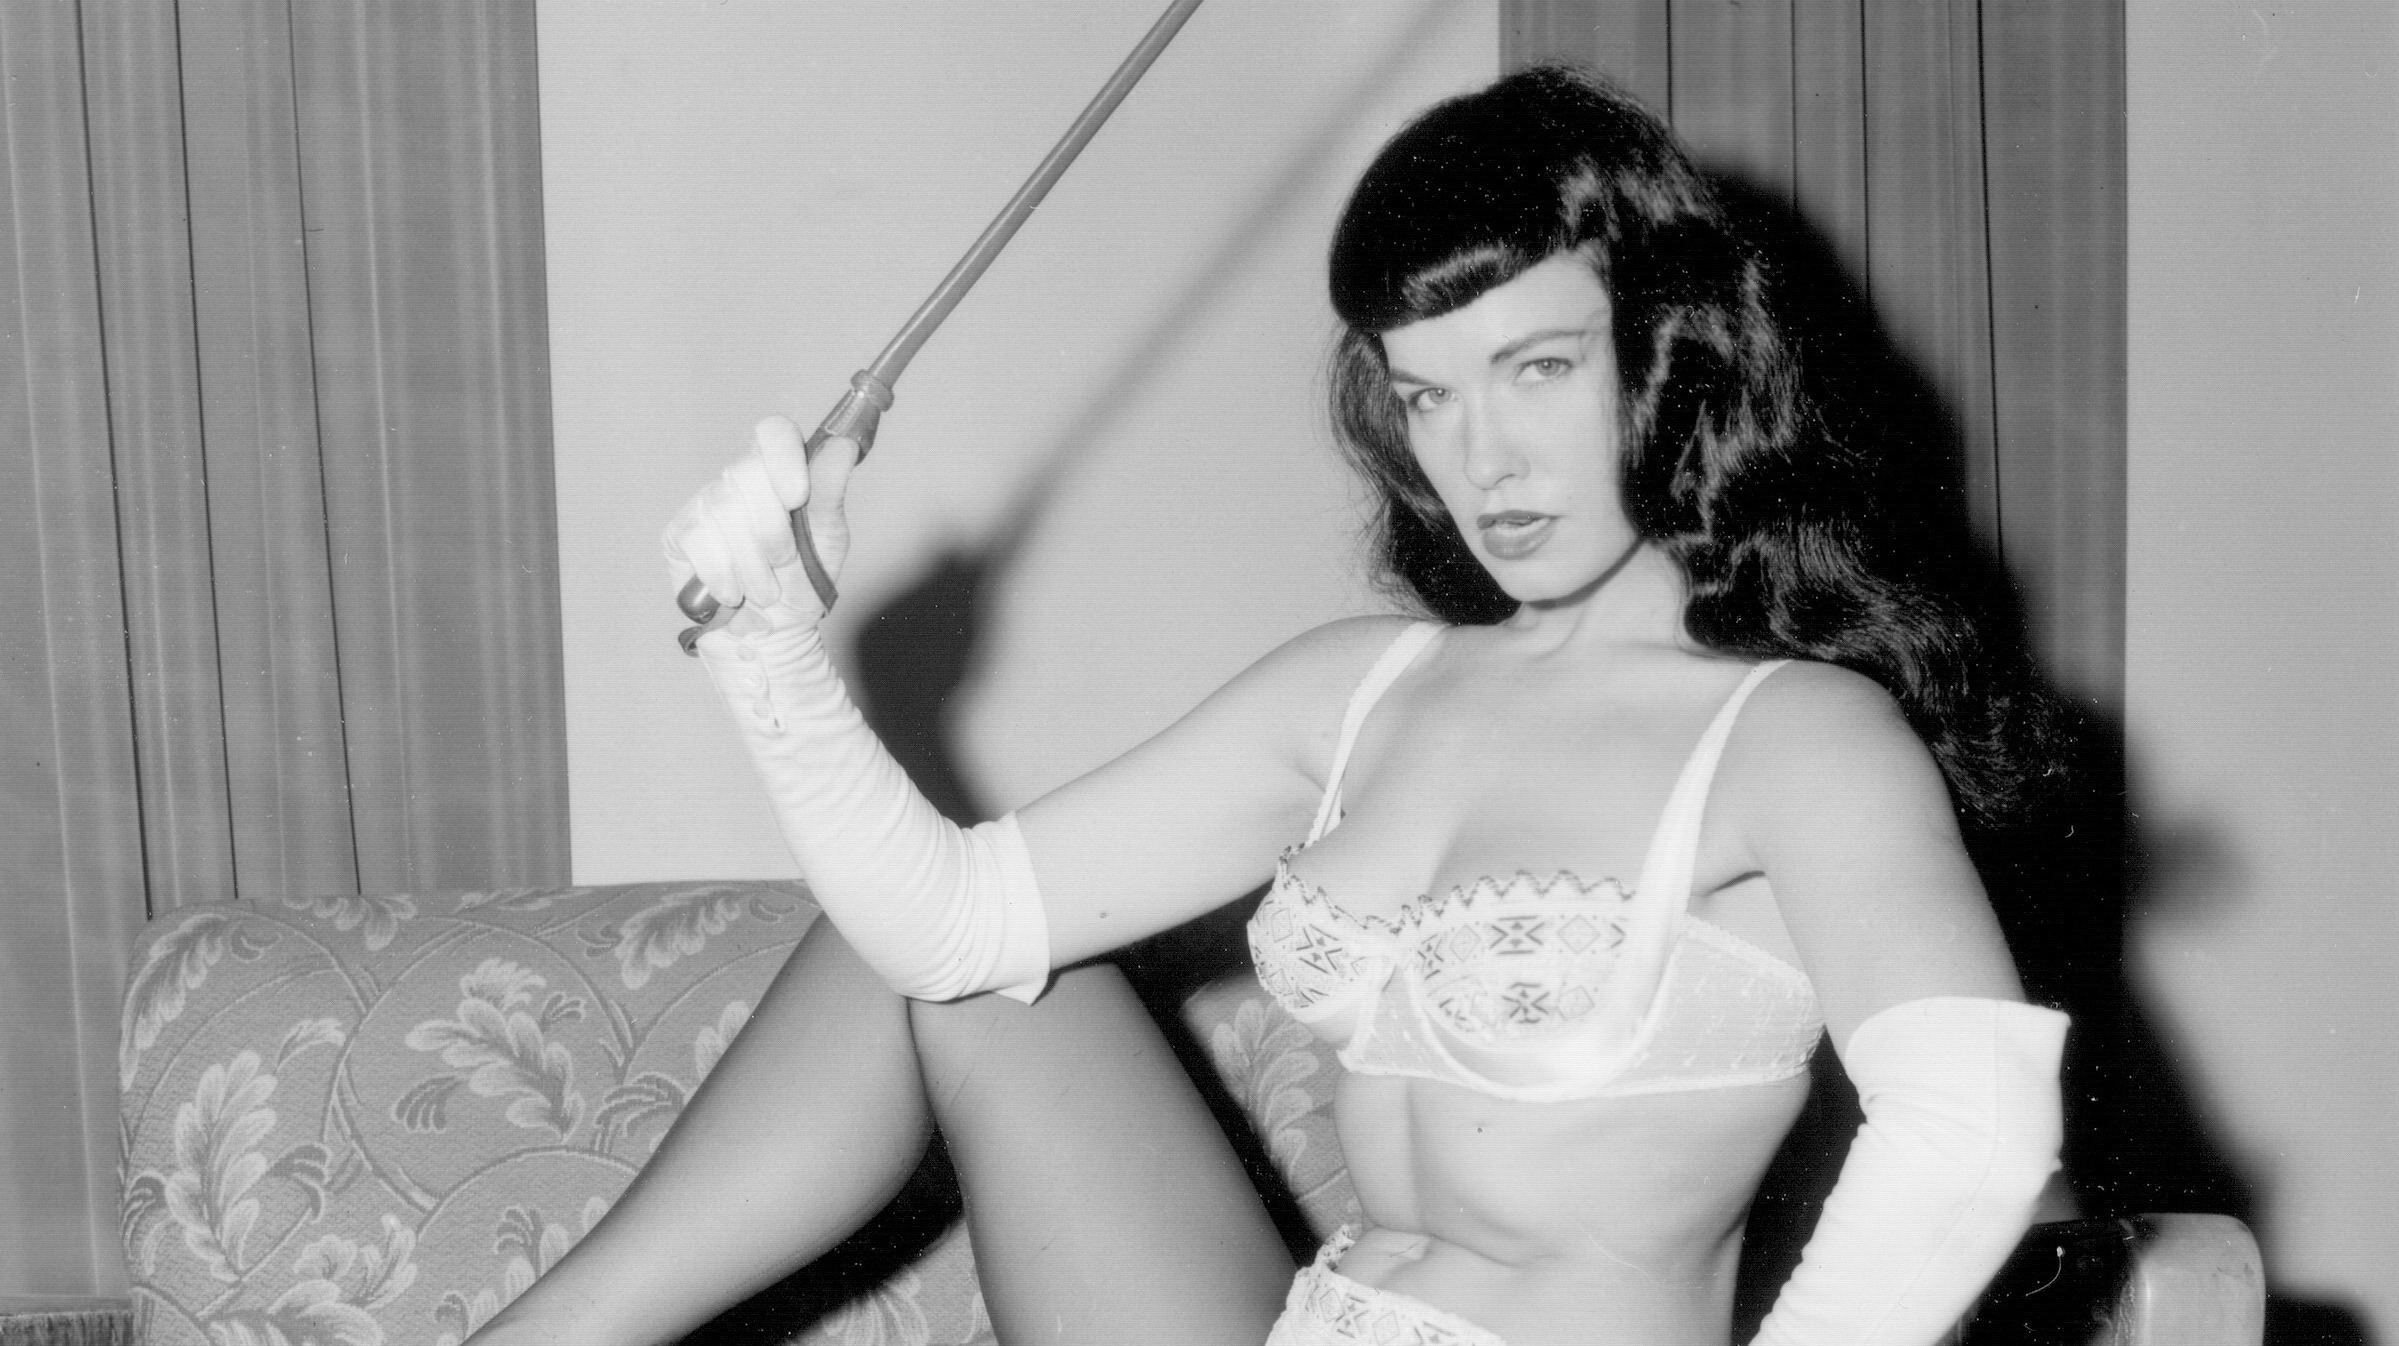 Bettie page tumblr are